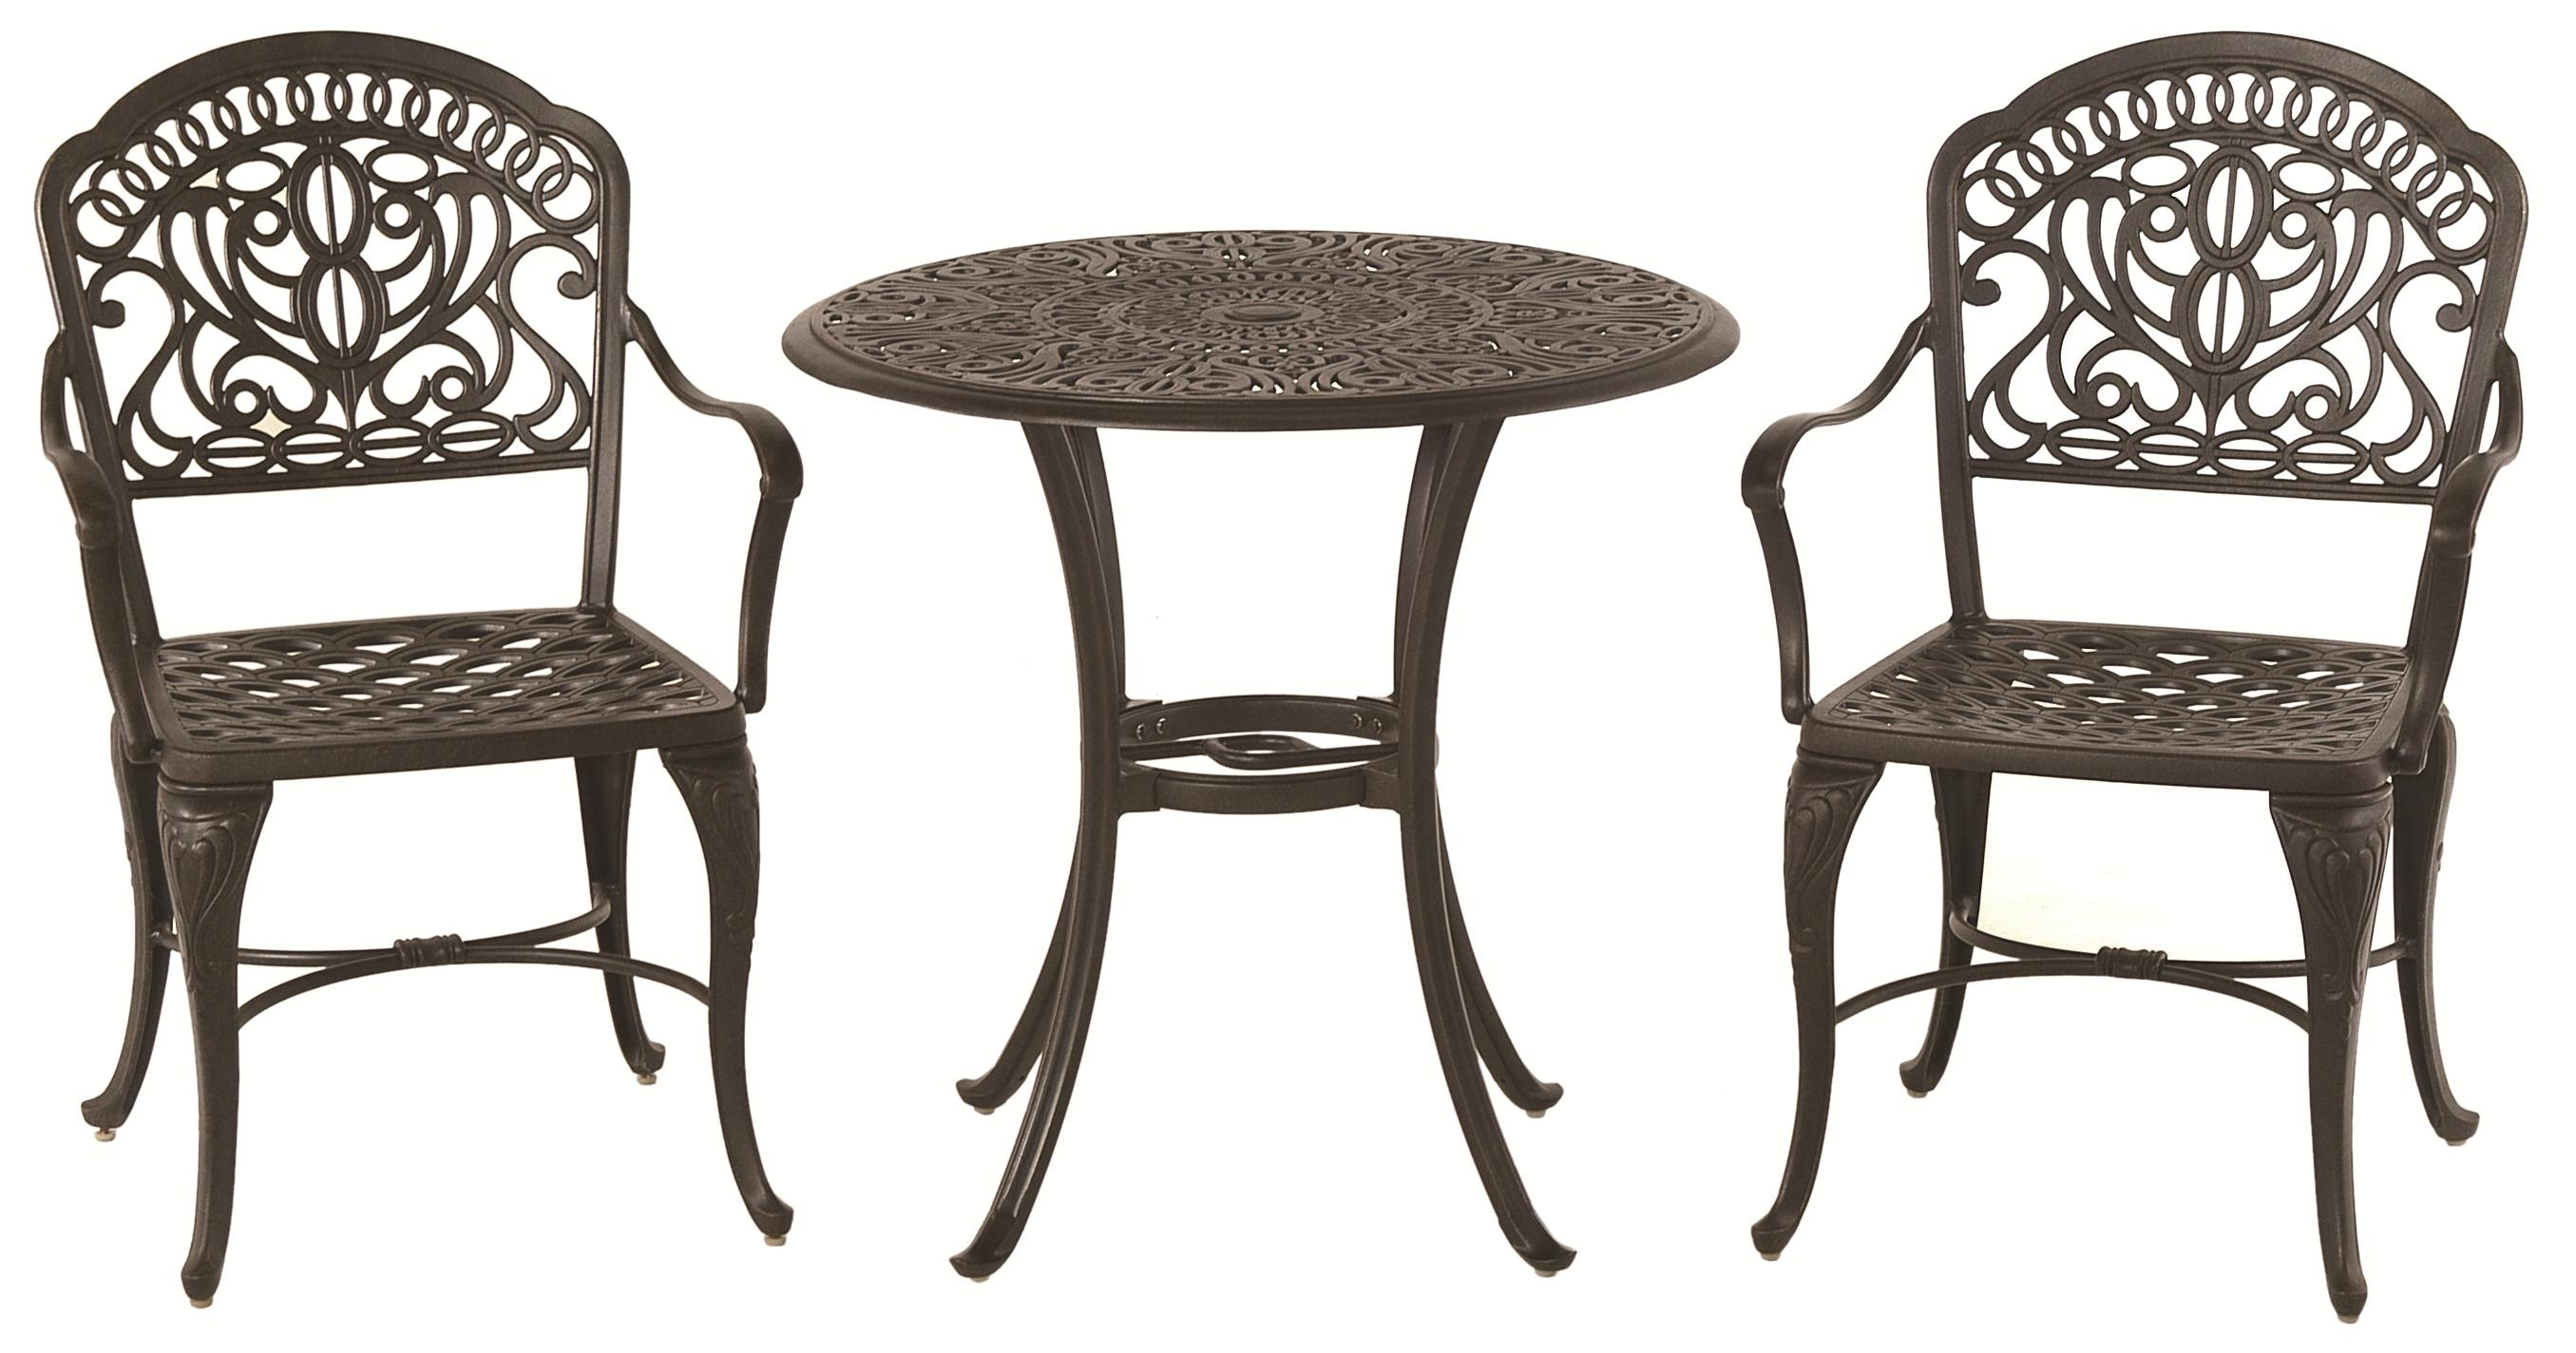 Hanamint Tuscany 3 Piece Bistro Set With Ornate Casting And Detailed Legs    AHFA   Outdoor Bistro Dining Set Dealer Locator